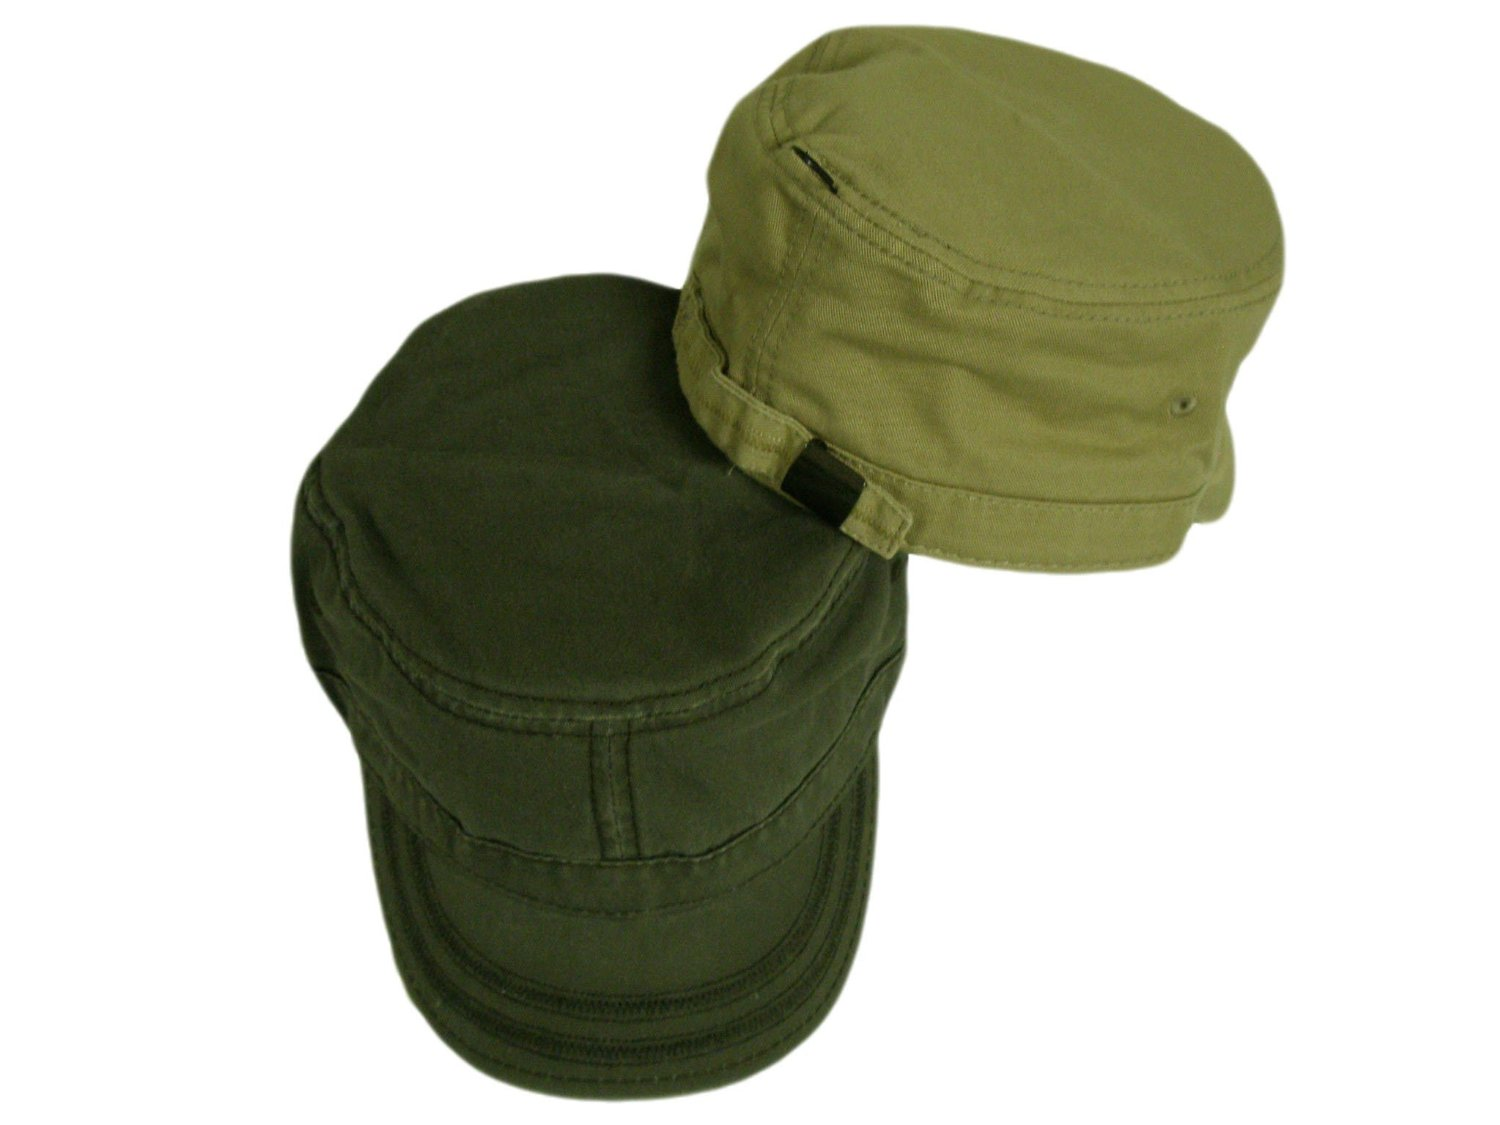 757570f95b992 Get Quotations · Military Style Golf Hats Olive Tan Ranger S M 2PK